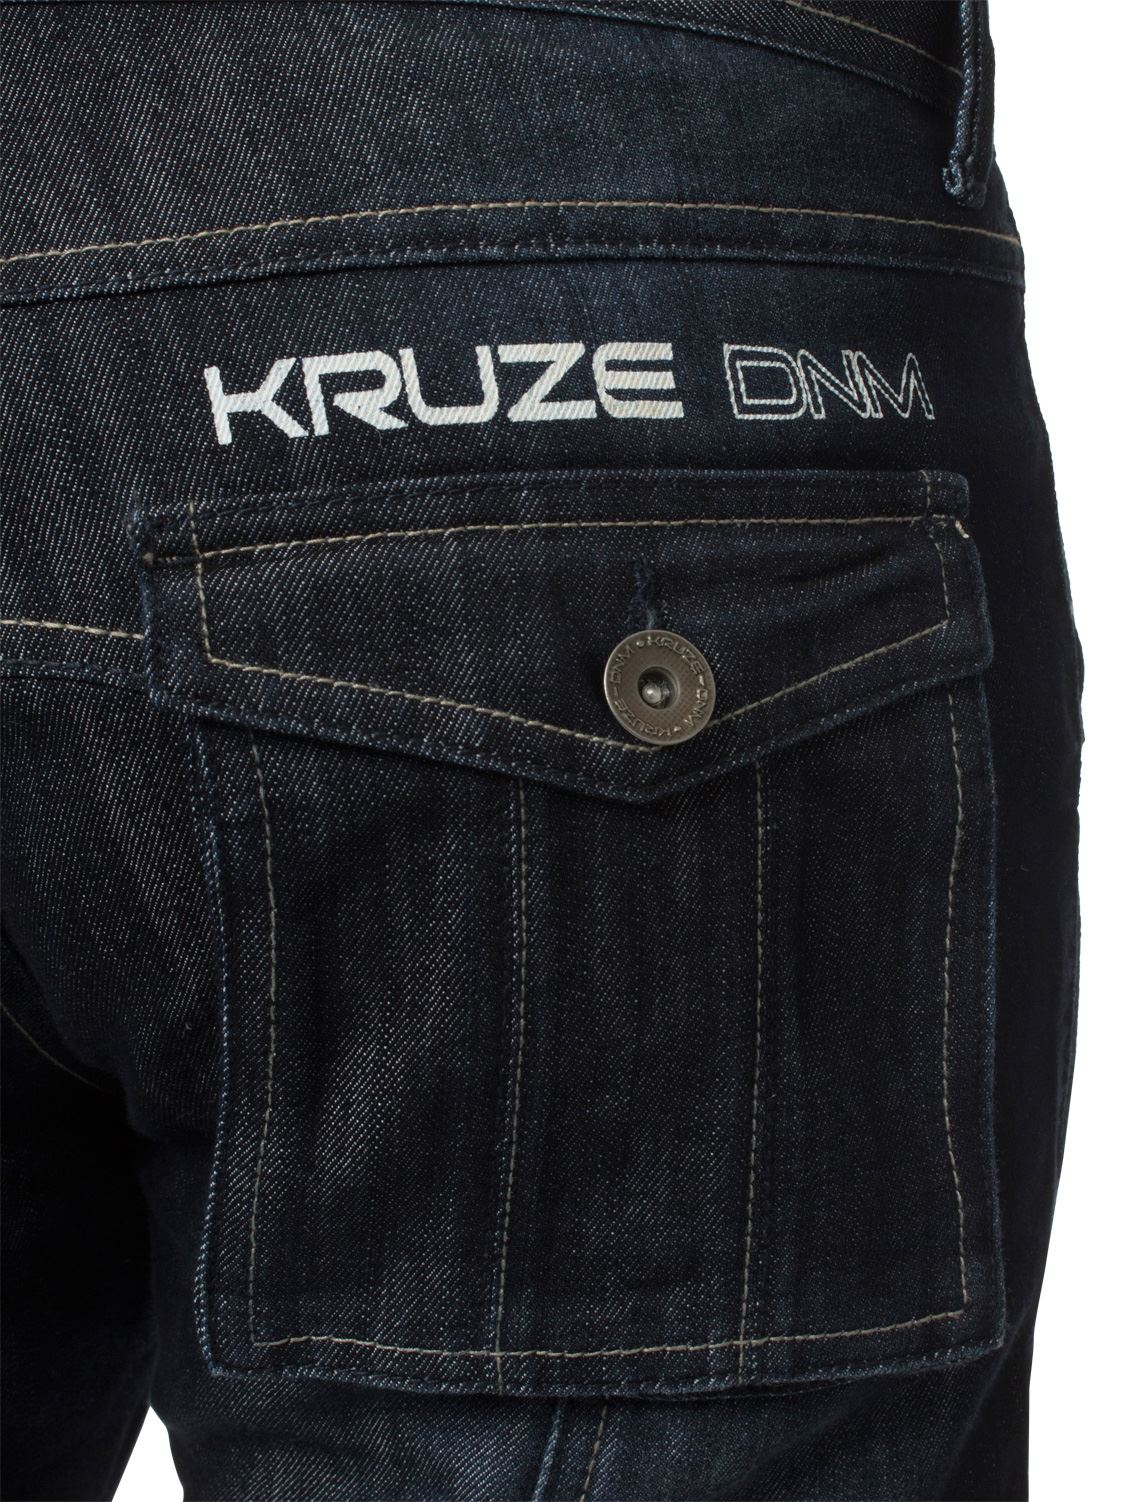 KRUZE-Mens-Combat-Jeans-Casual-Cargo-Work-Pants-Denim-Trousers-All-Waist-Sizes thumbnail 25